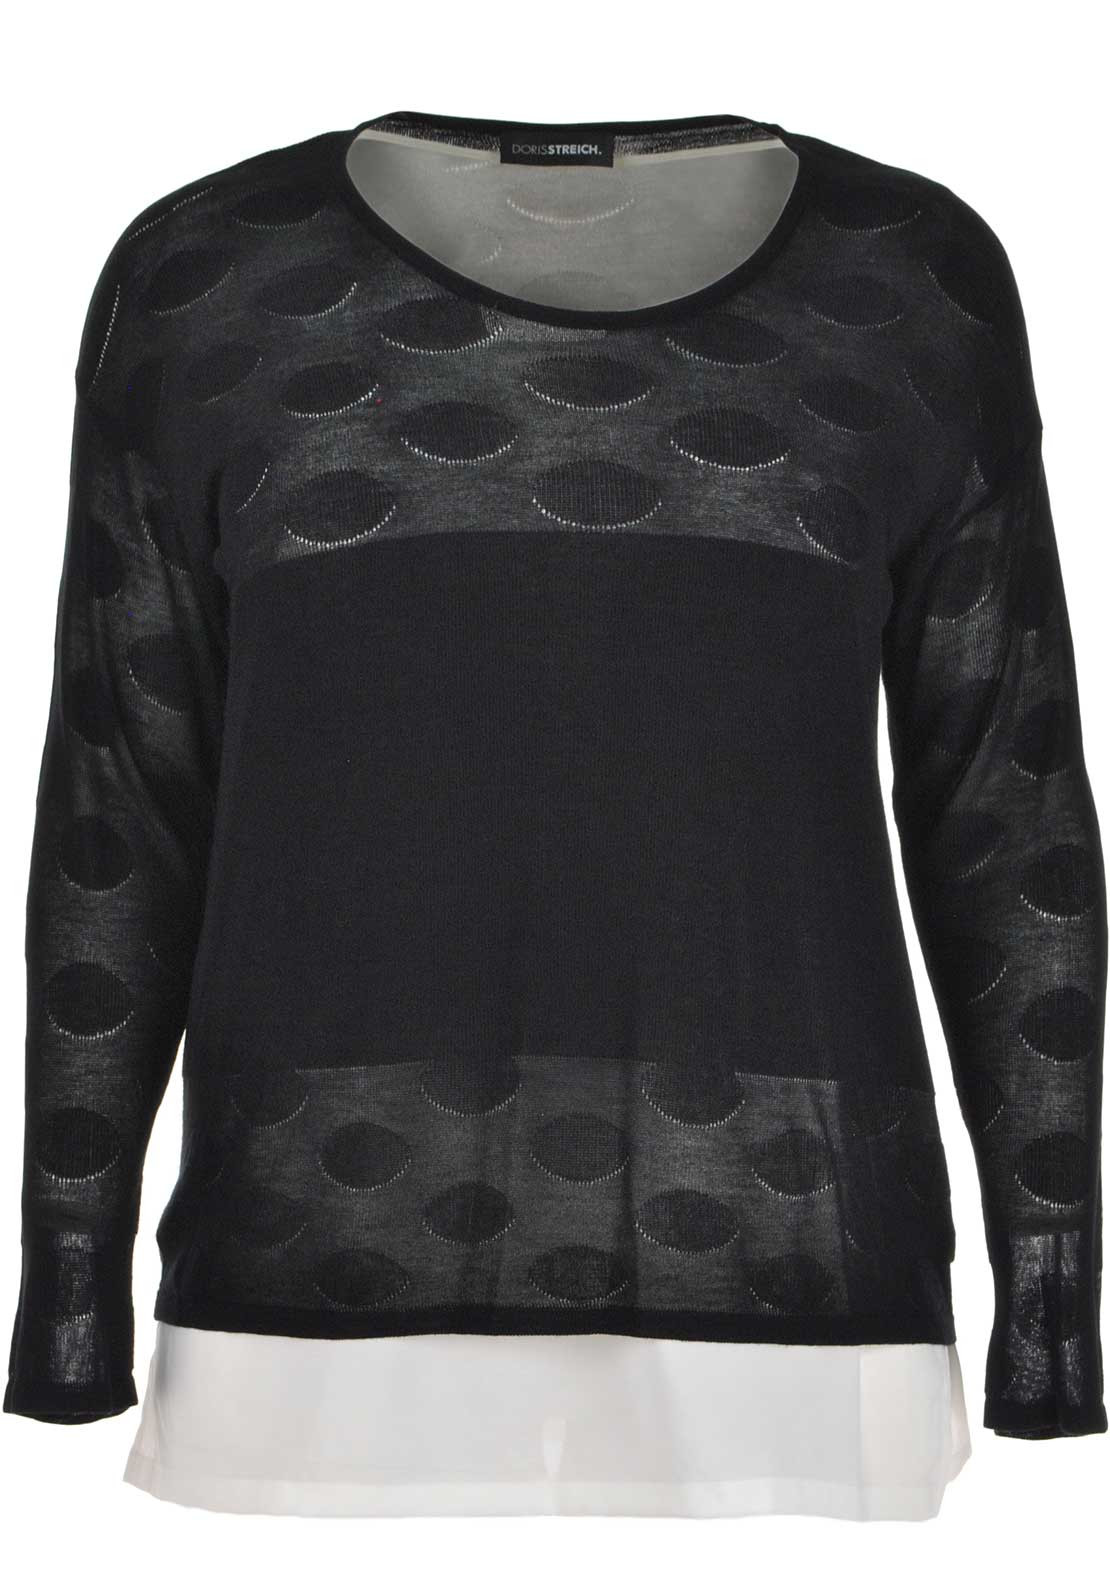 Doris Streich Double Layer Long Sleeve Top, Black and White